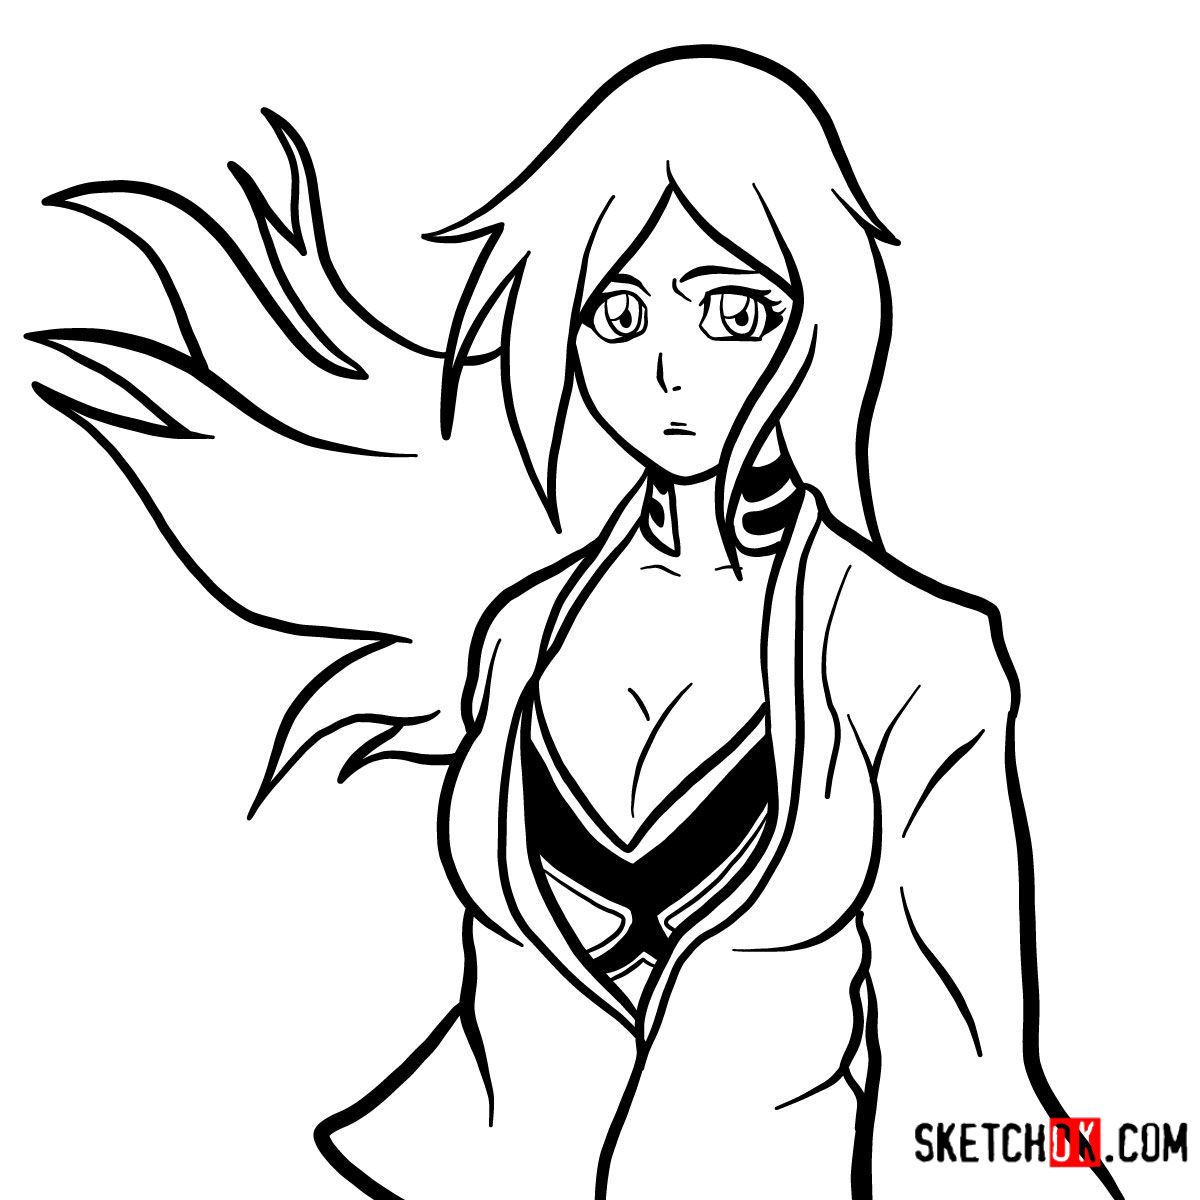 How to draw Orihime Inoue face | Bleach